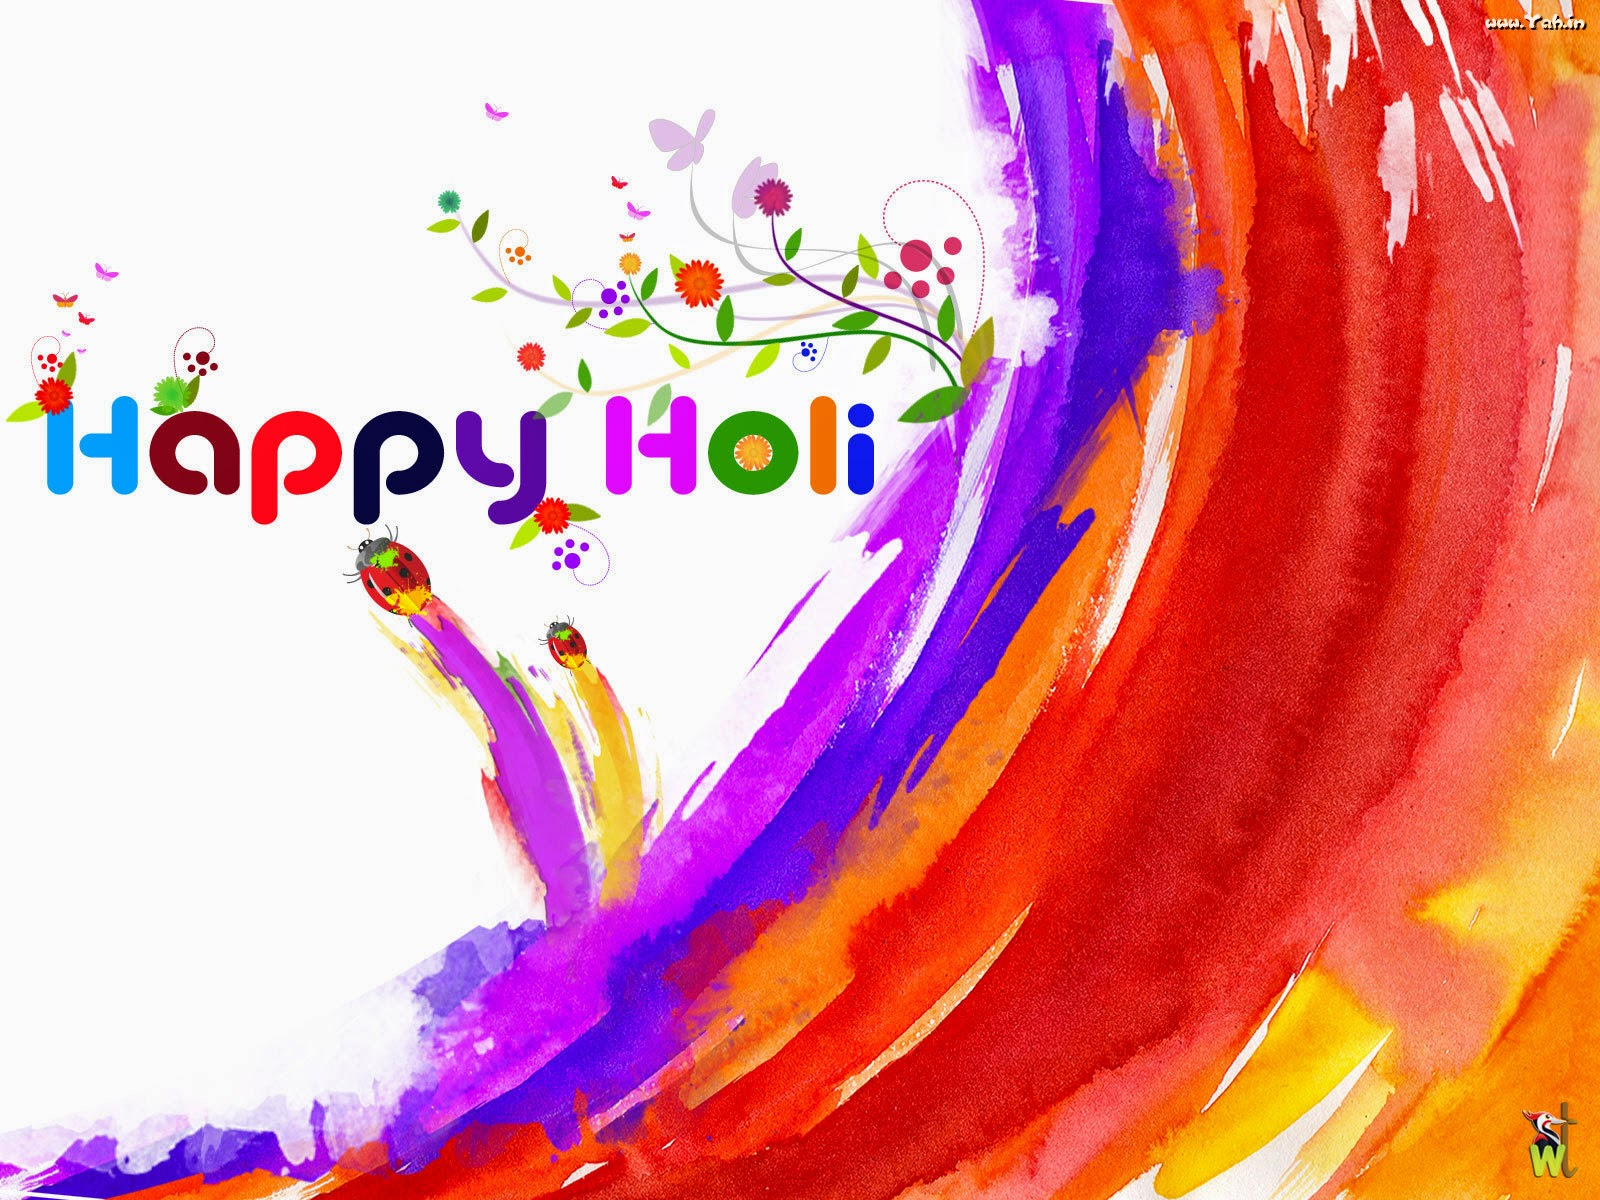 when is holi 2015 festival happy holi 2017 happy holi when is holi 2015 festival